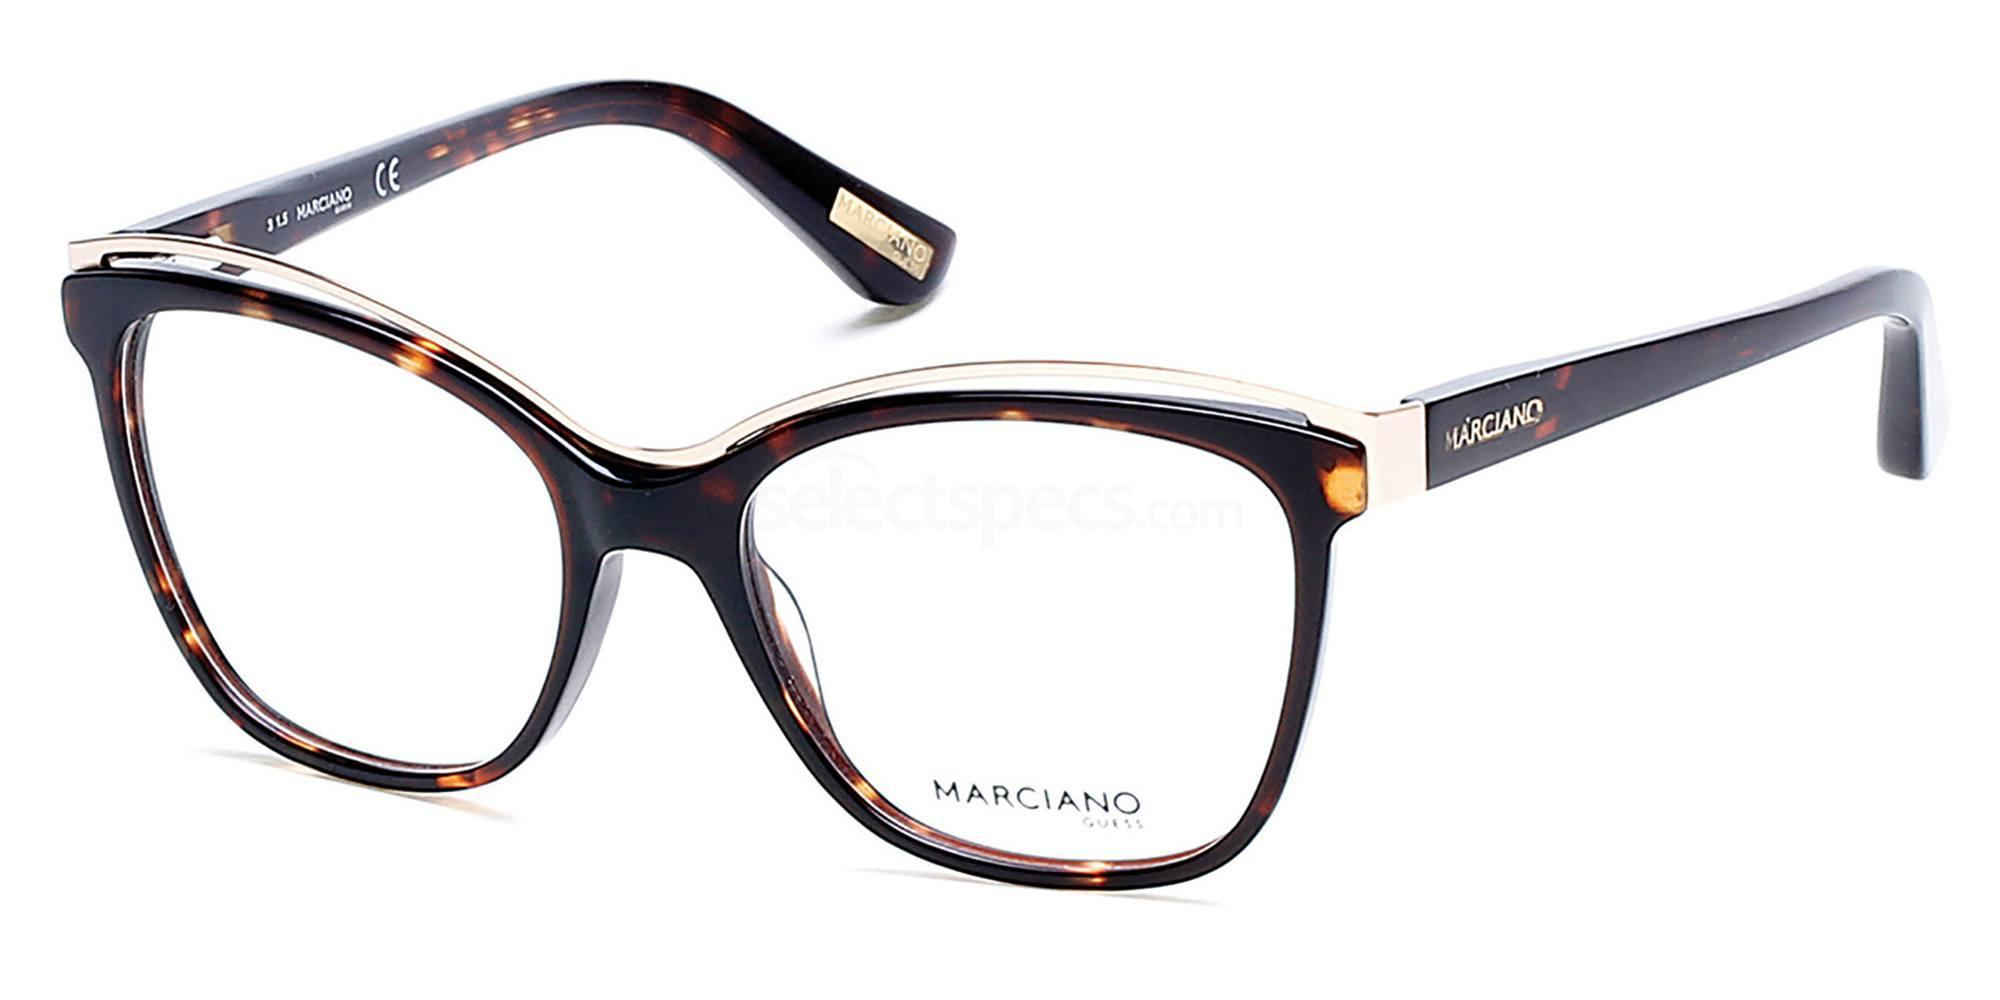 052 GM0276 Glasses, Guess by Marciano